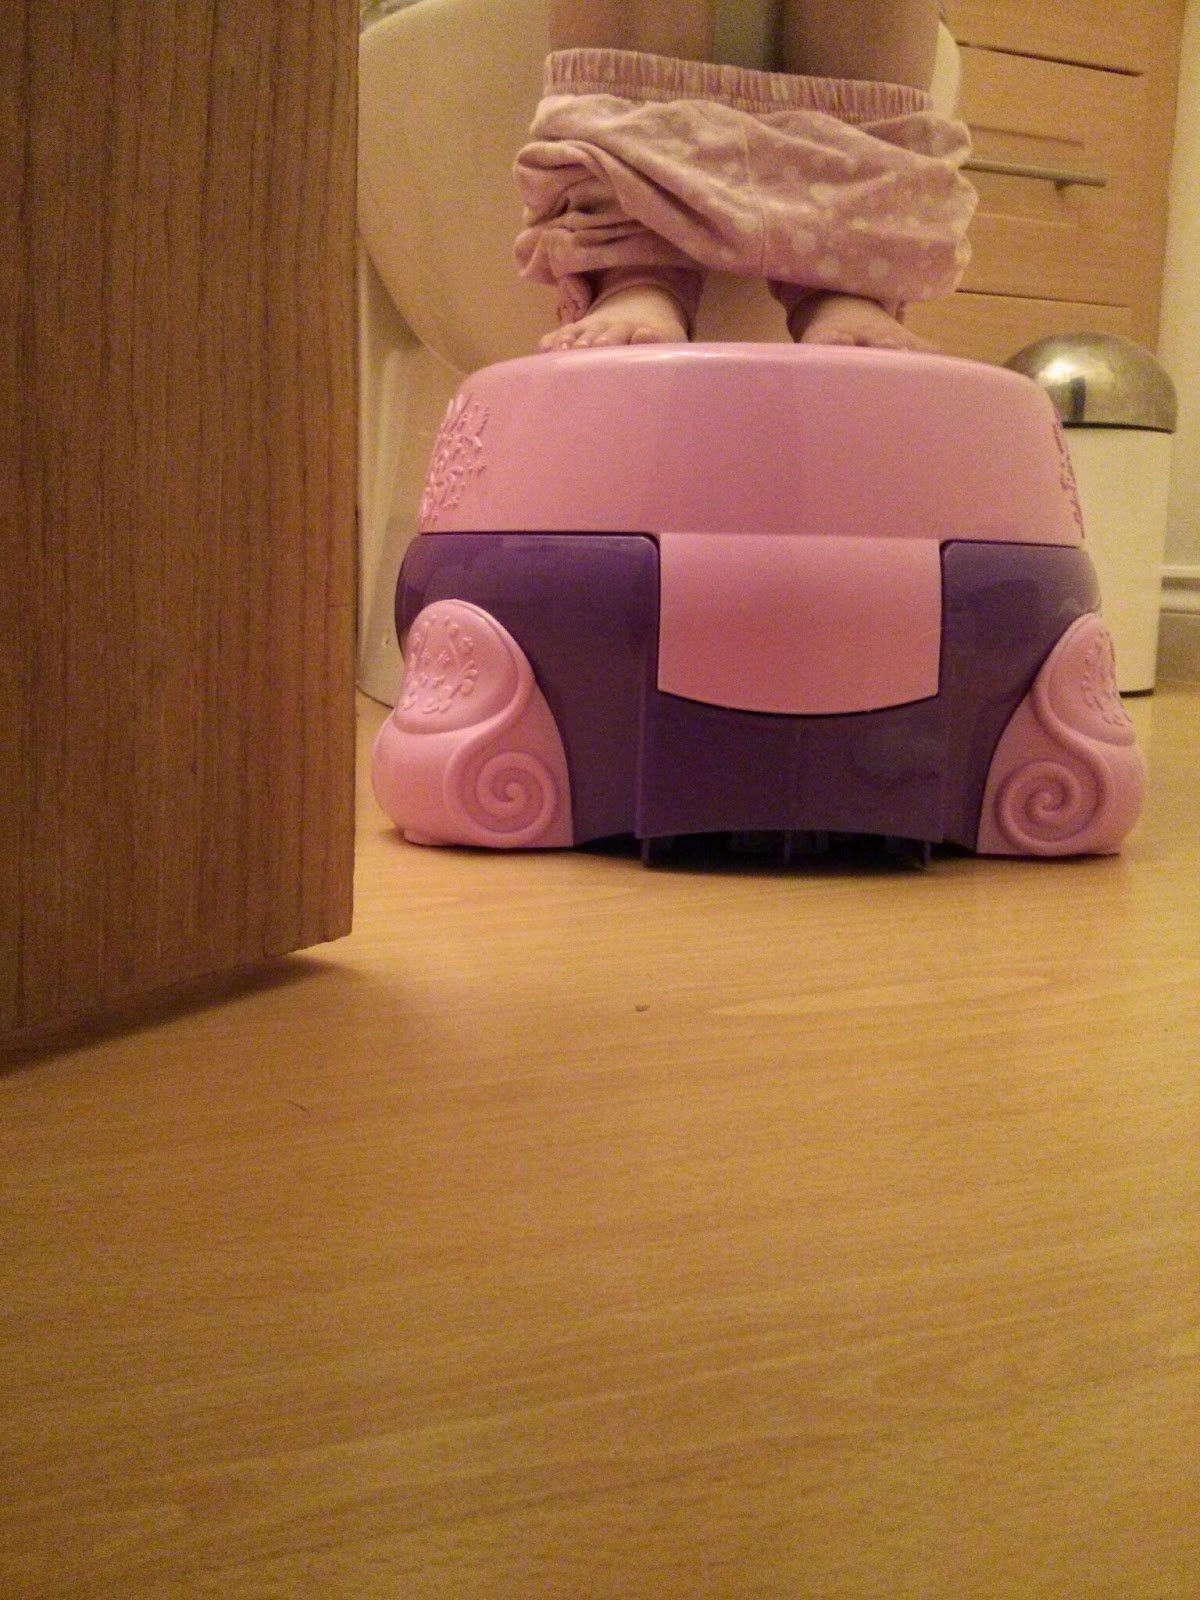 Using Disney Princess potty as step